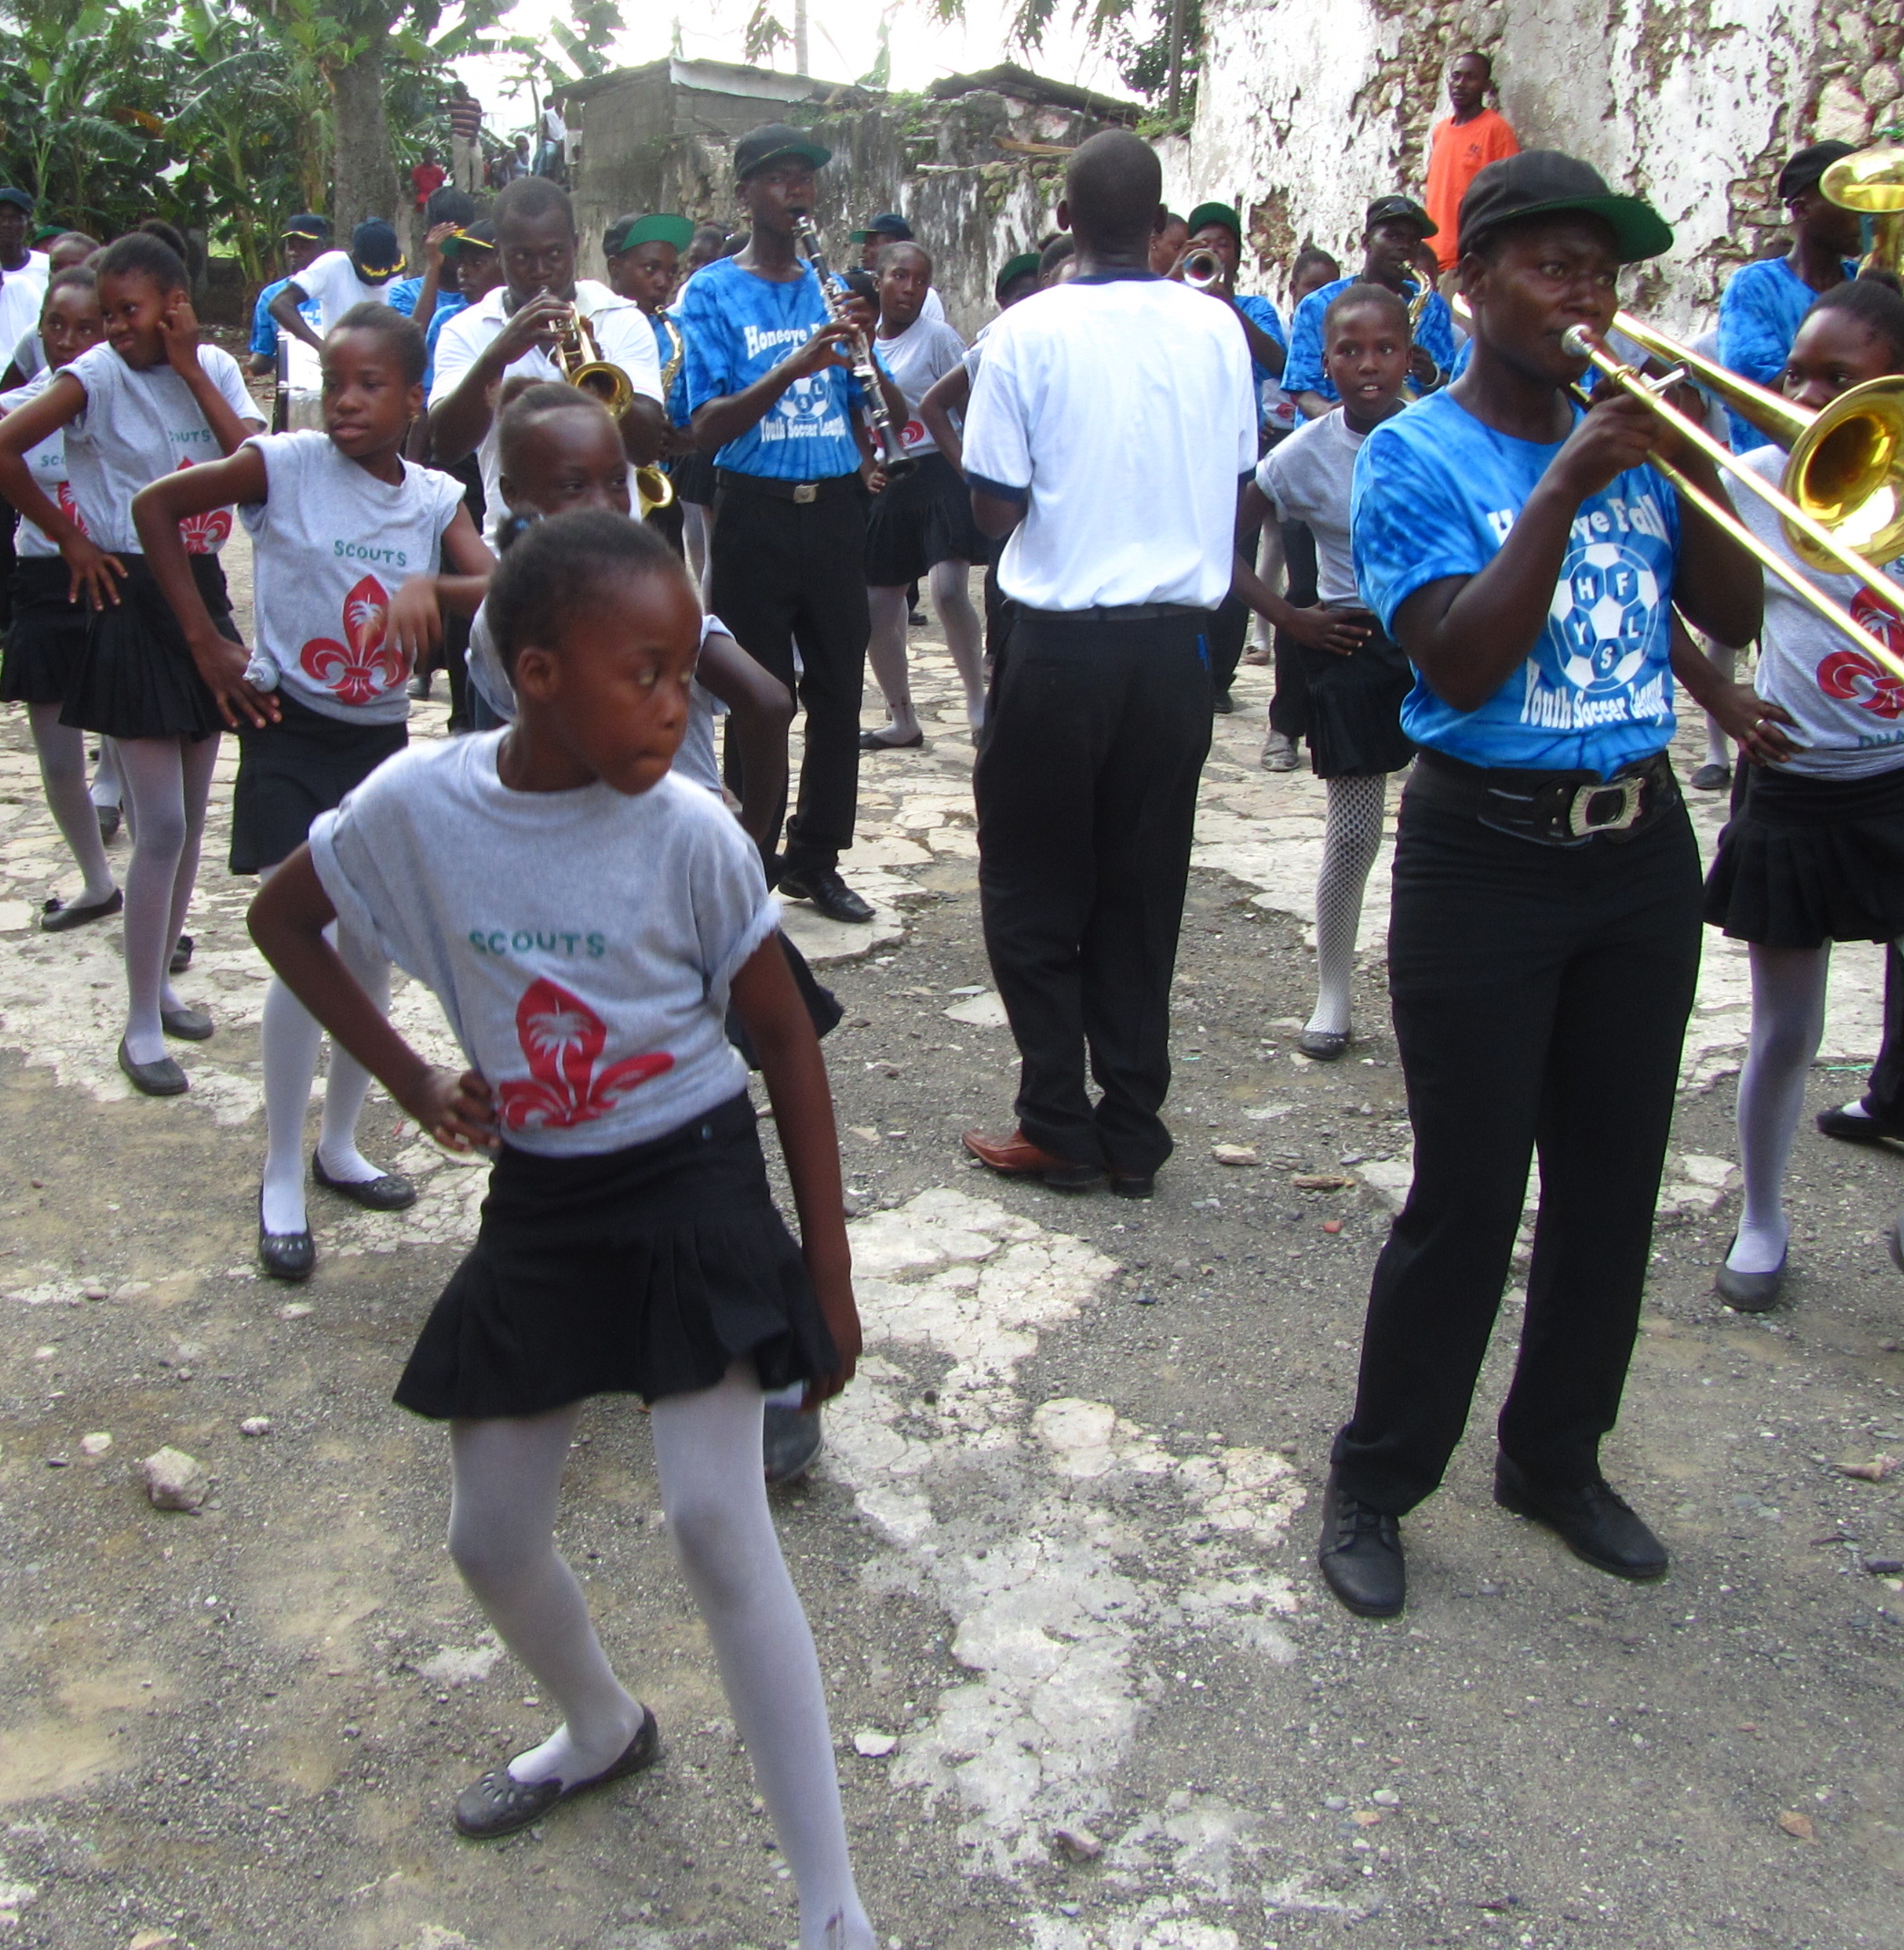 dancers and players in Borgne band